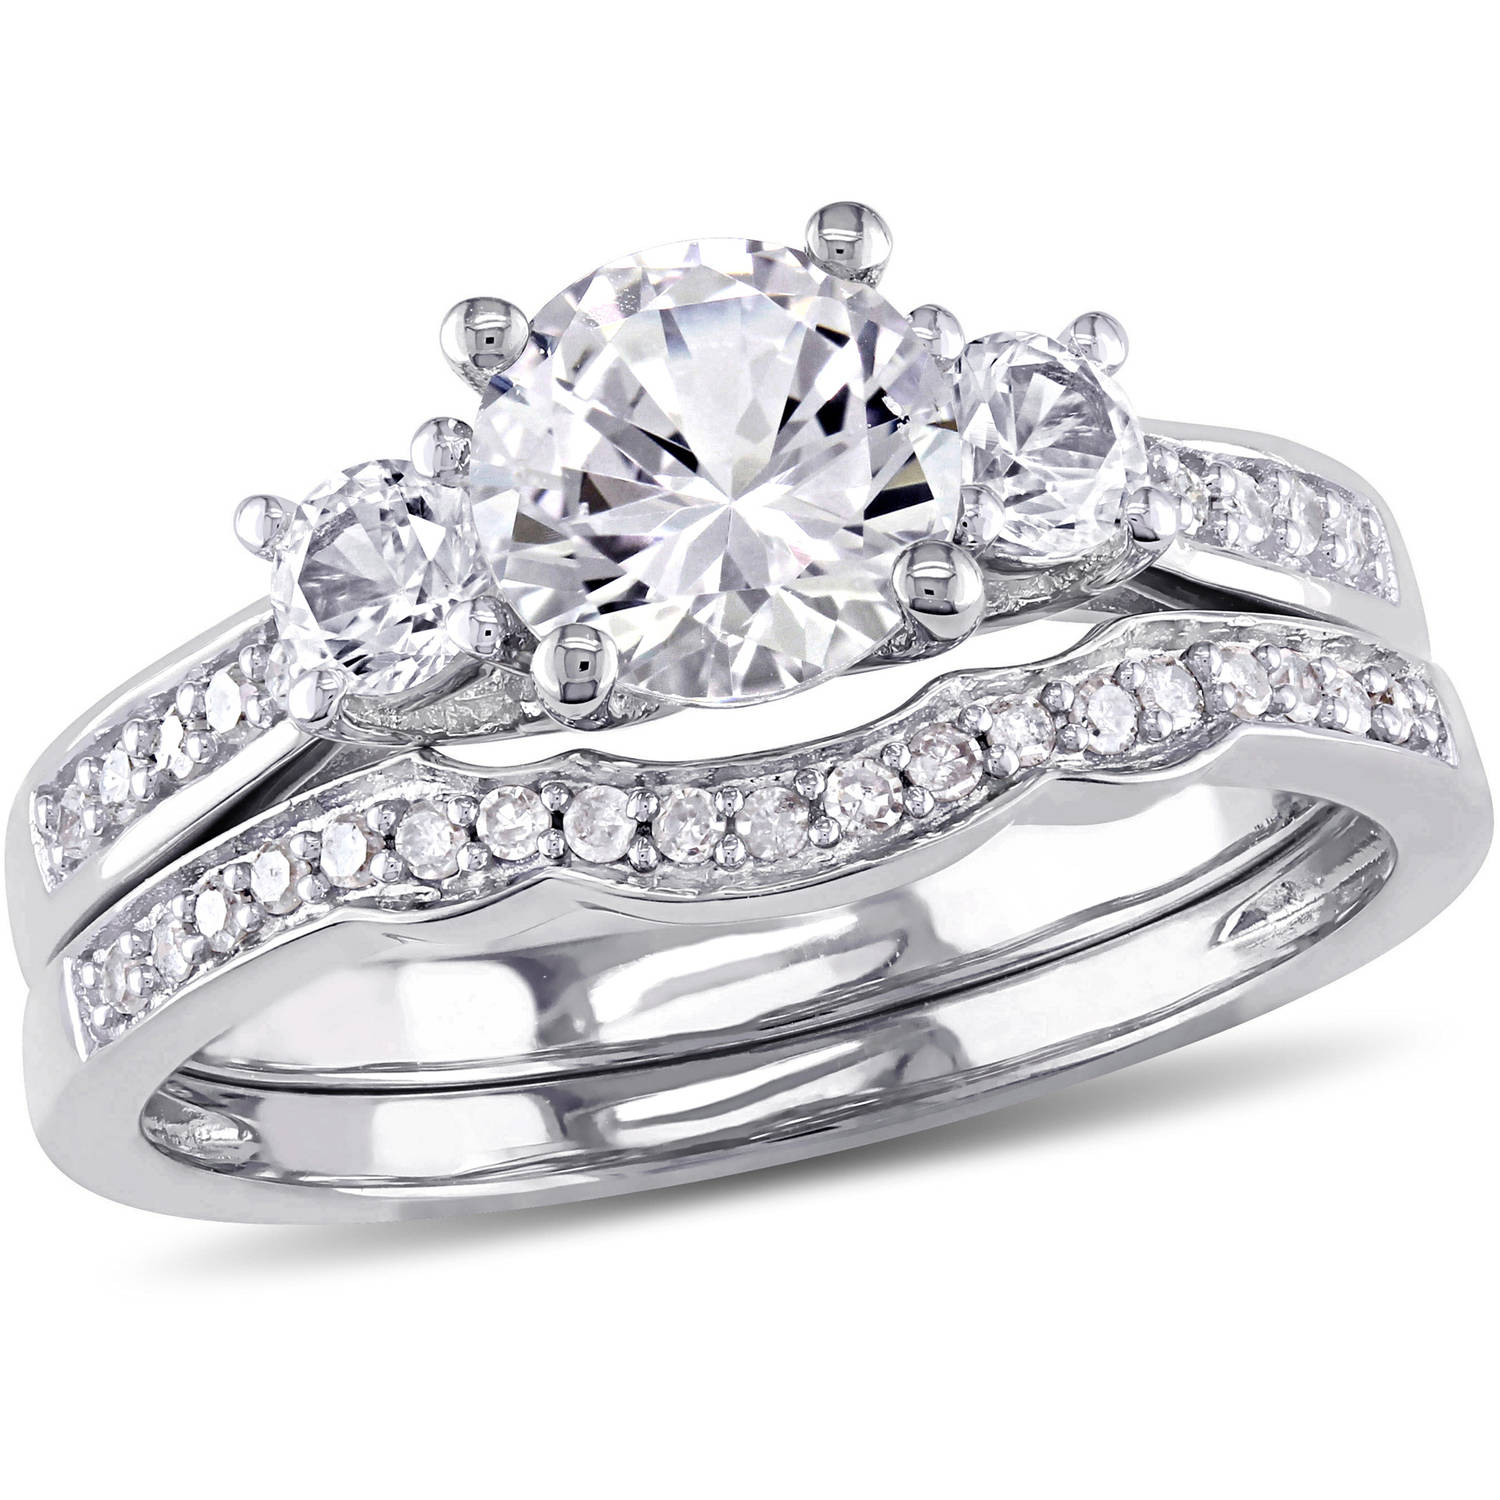 Miabella 1-1 3 Carat T.G.W. Created White Sapphire with 1 7 Carat T.W. Diamond 10kt White Gold Three-Stone Bridal Set by Delmar Manufacturing LLC